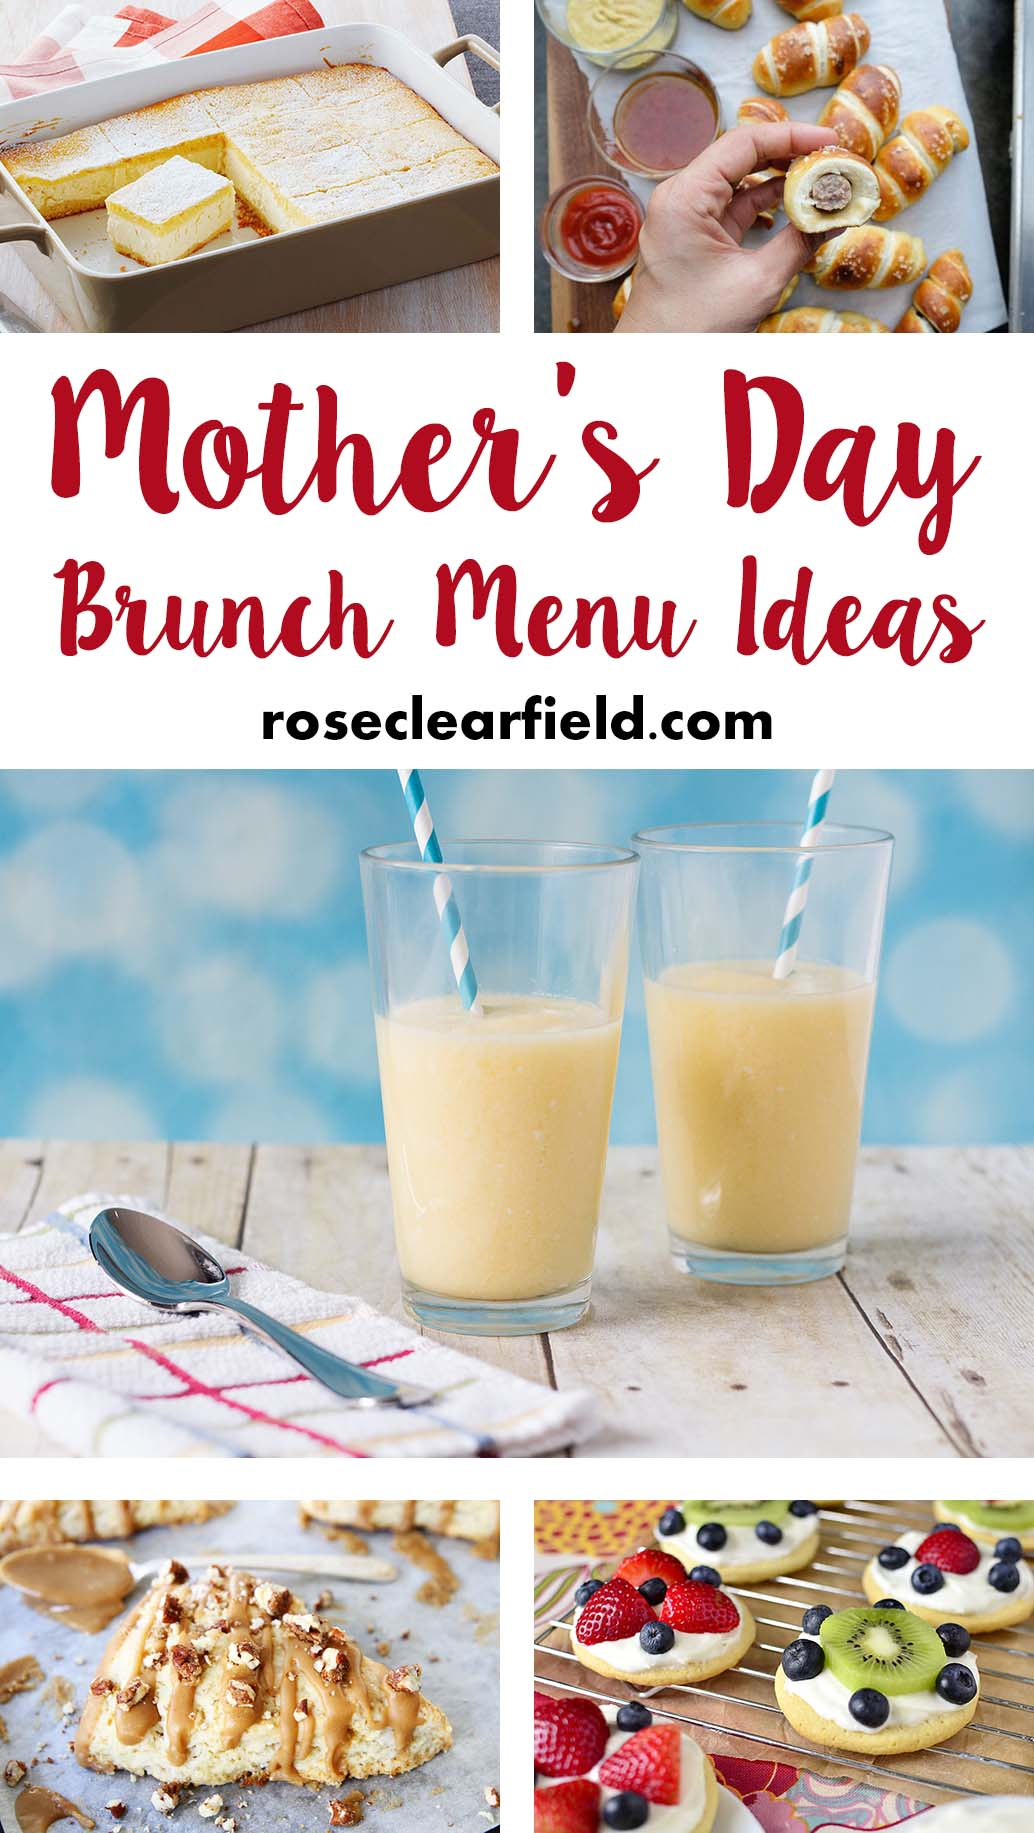 Mother's Day Brunch Menu Ideas • Rose Clearfield